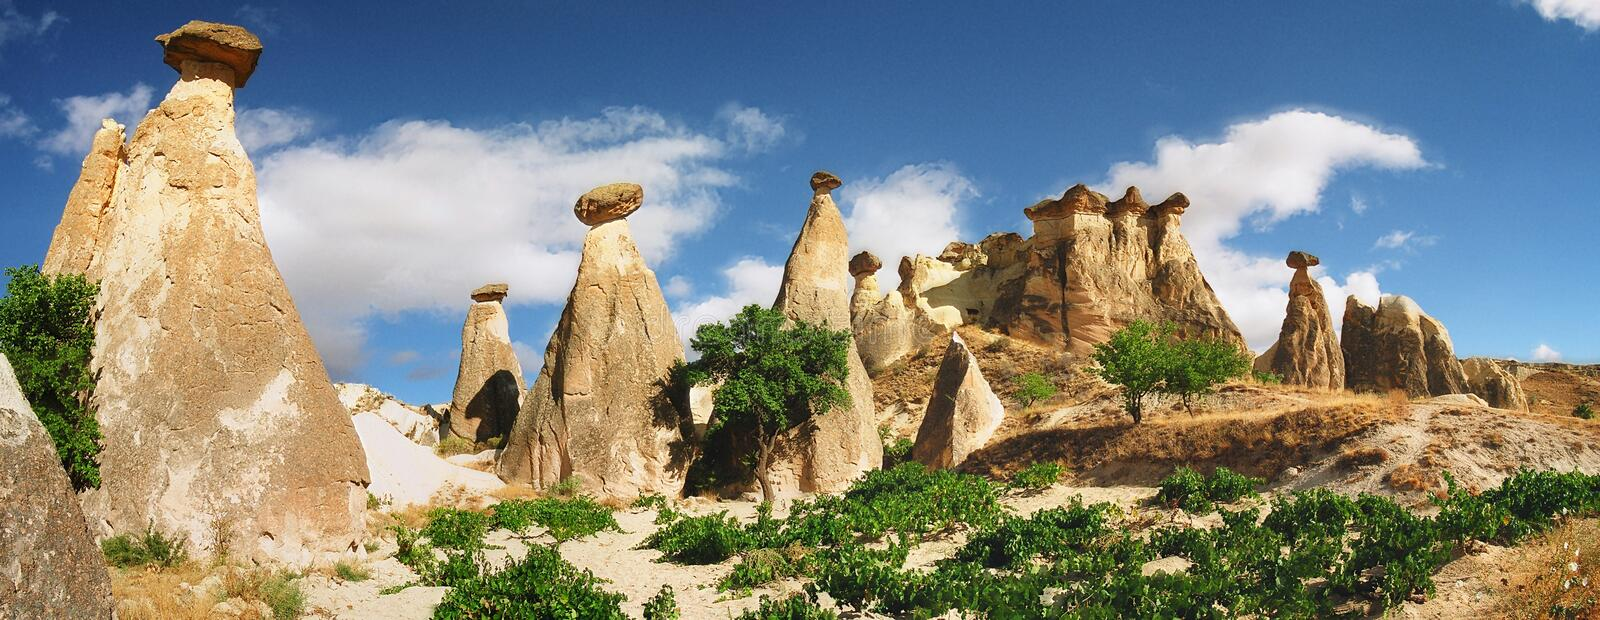 Stone formations stock image